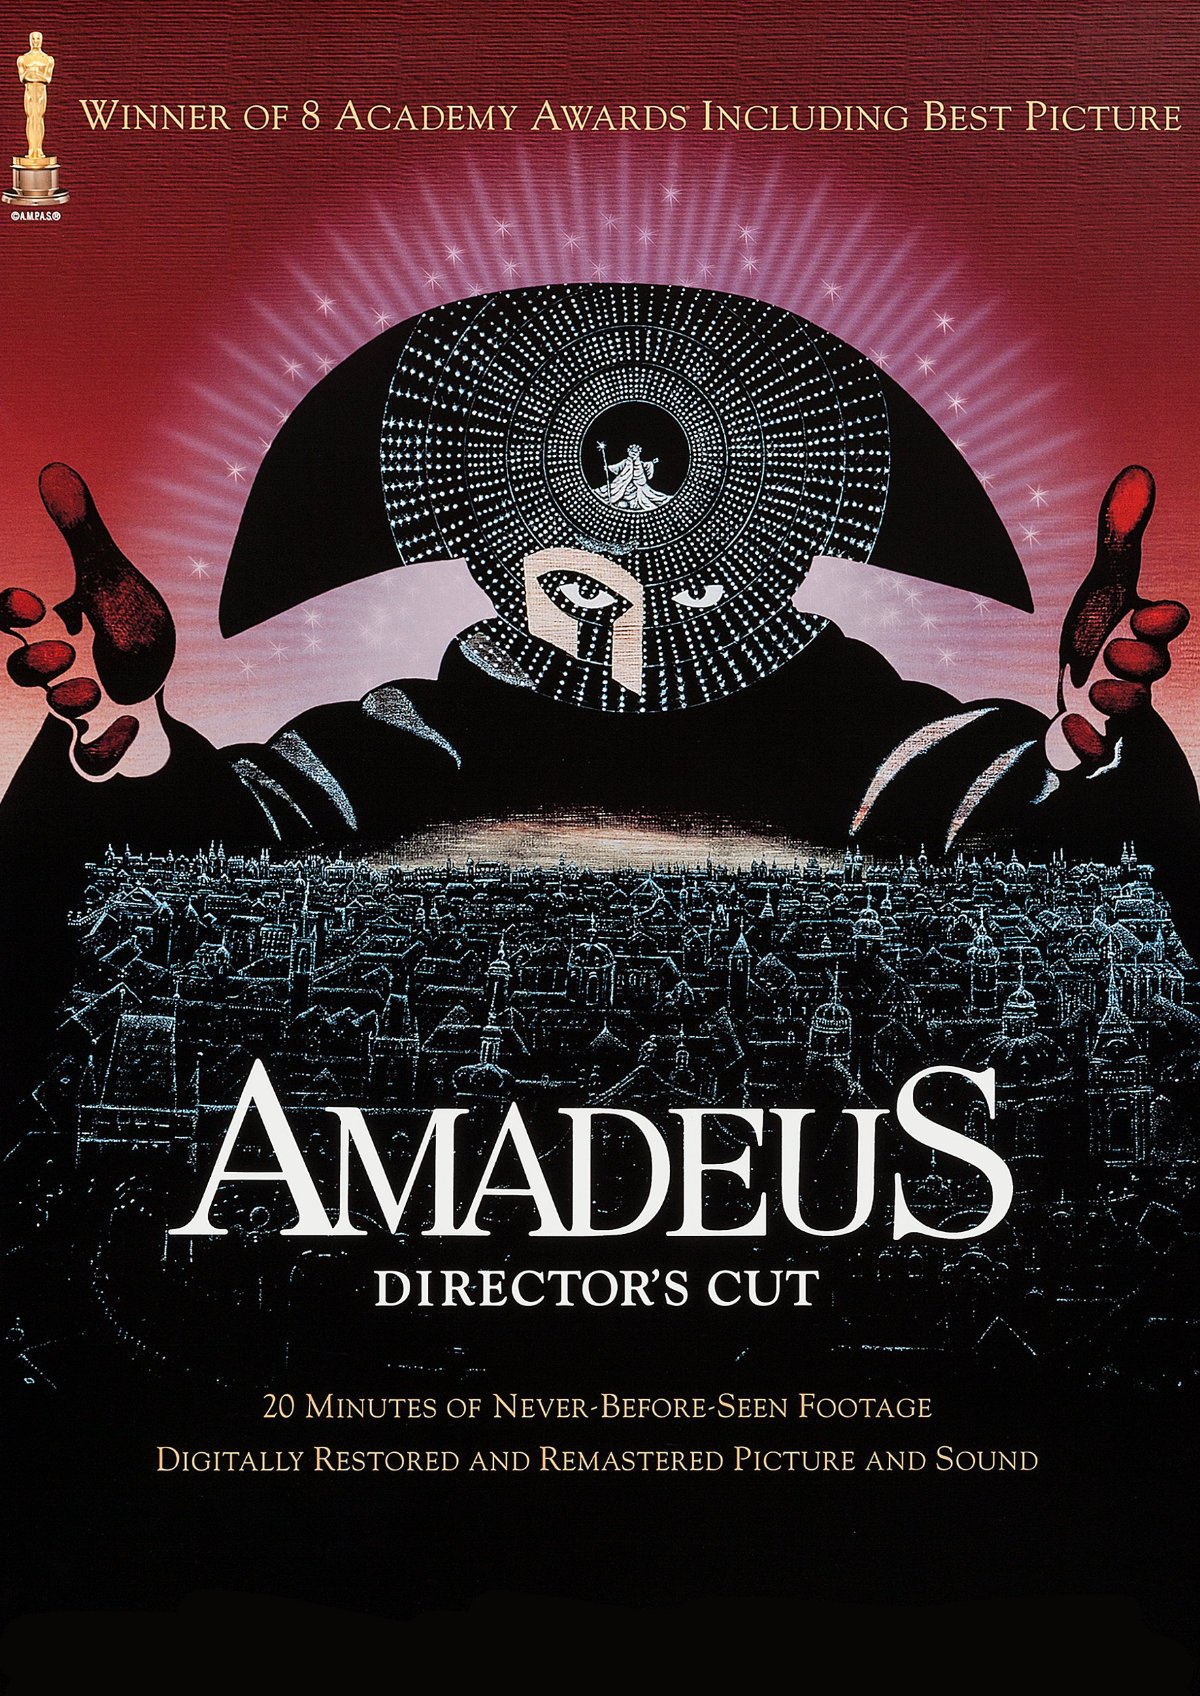 'Amadeus: The Director's Cut' movie poster